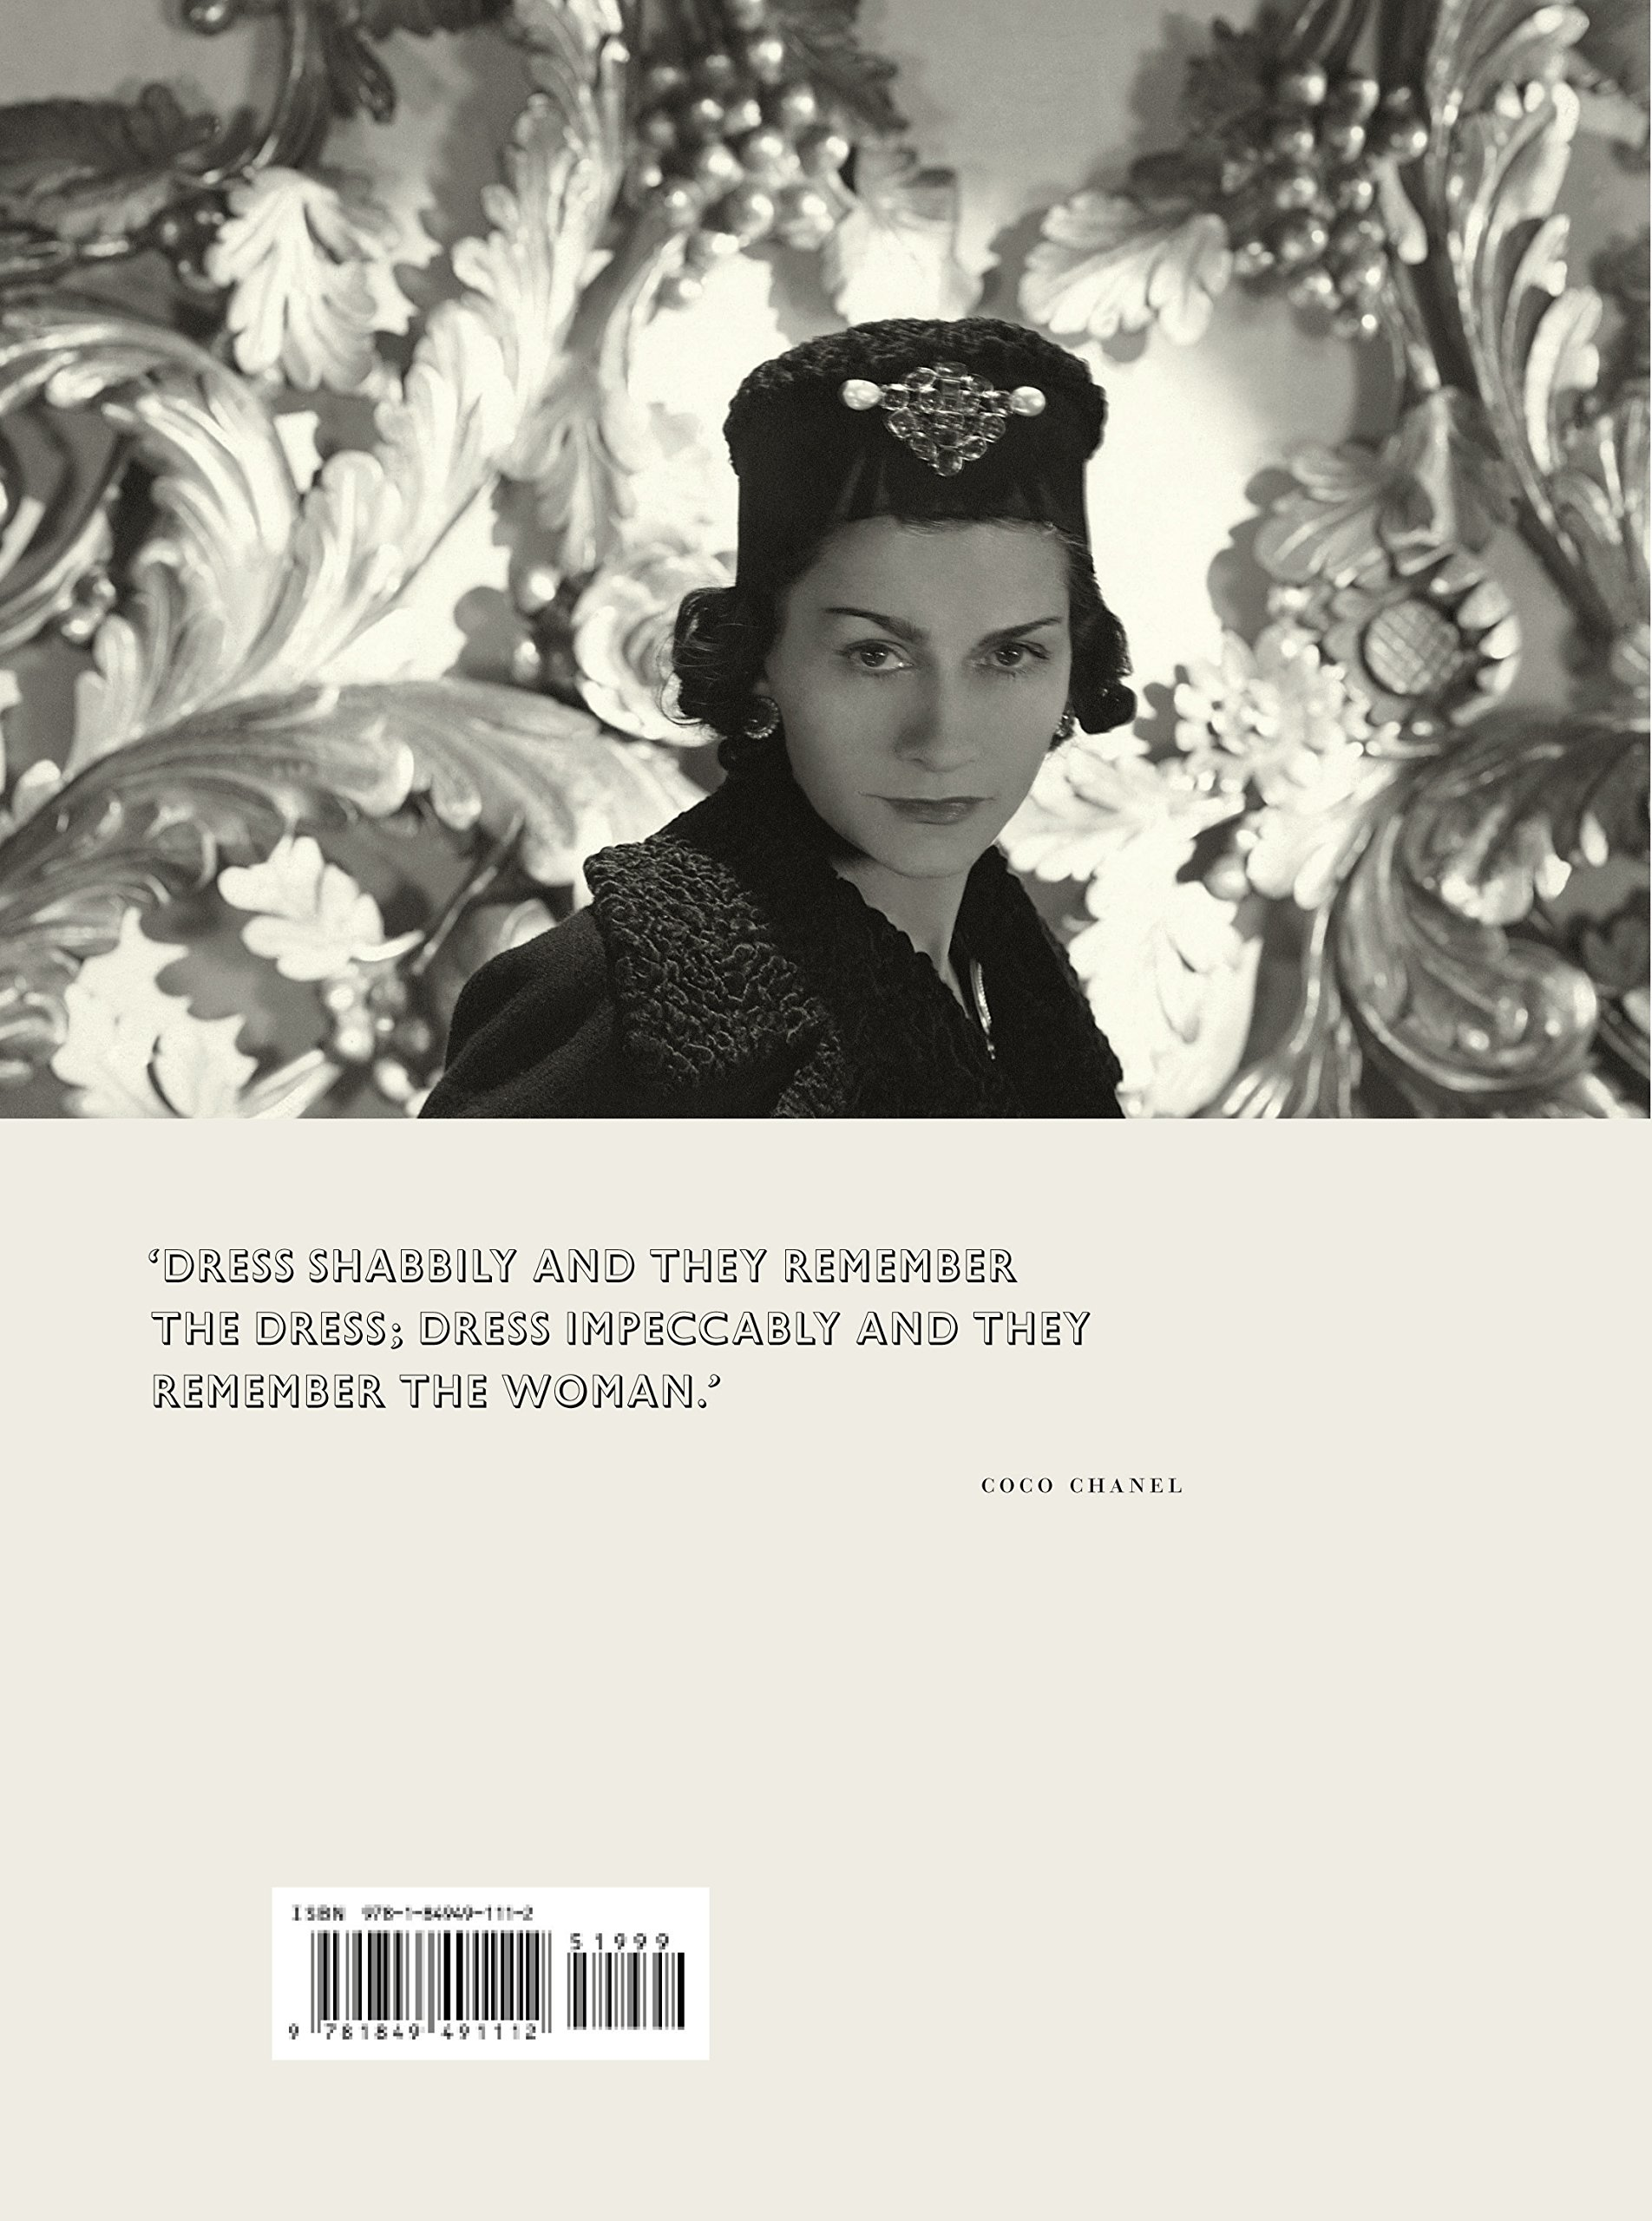 167a5e118be Vogue on  Coco Chanel (Vogue on Designers)  Amazon.co.uk  Bronwyn Cosgrave   8601200813548  Books